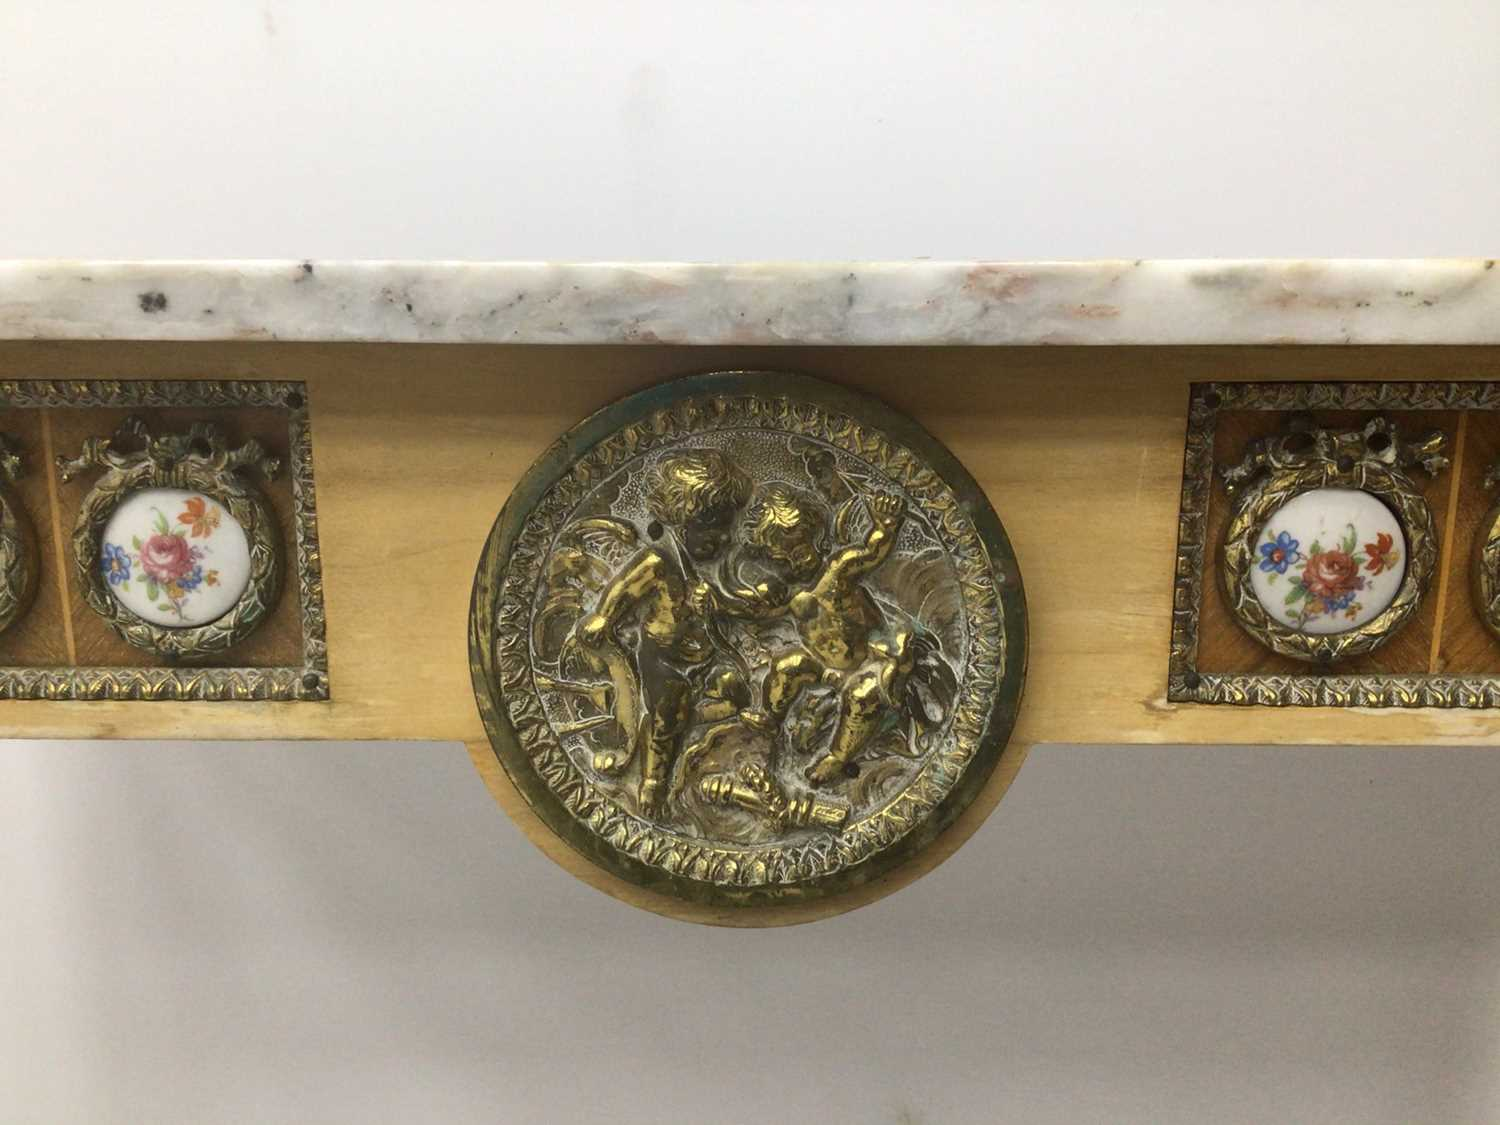 Antique style hall table with marble top, frieze inset with porcelain plaques on fluted turned legs - Image 4 of 7